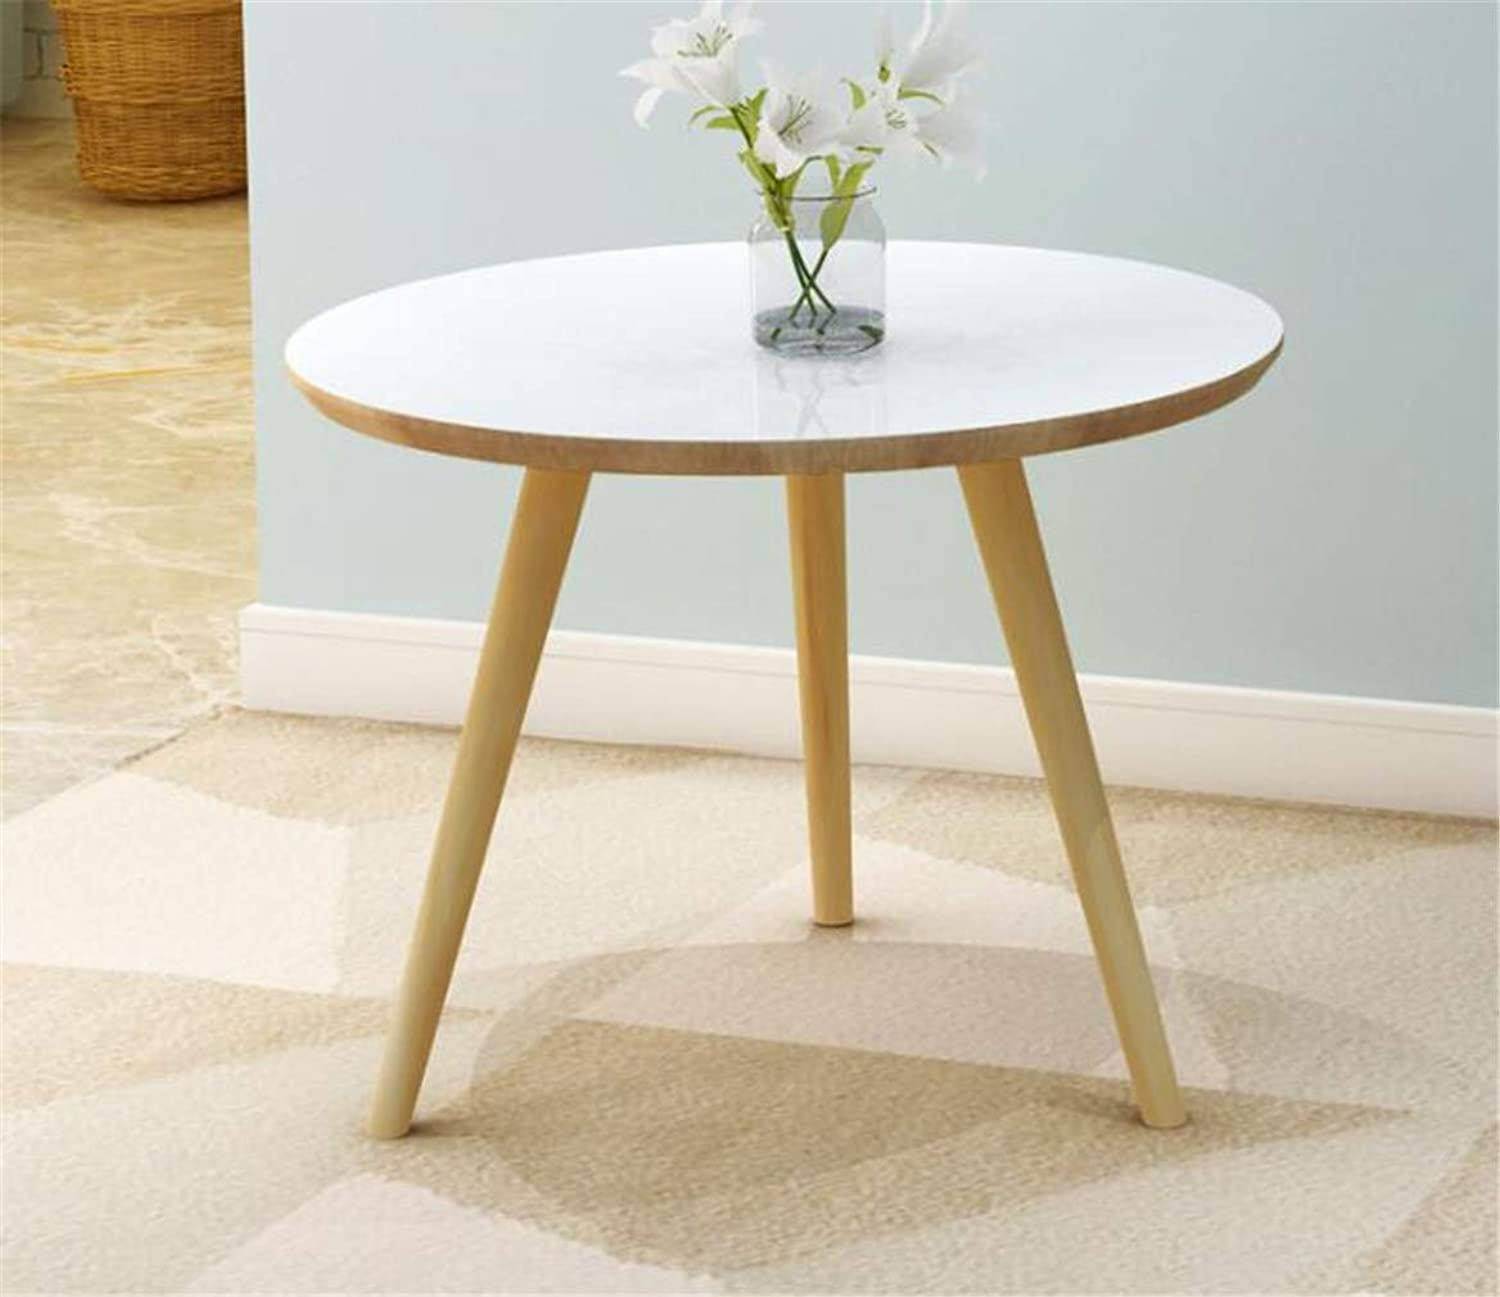 Small White Coffee Tables Living Room Round Table Solid Wood Legs + Painted Desktop 60x60x50.5cm